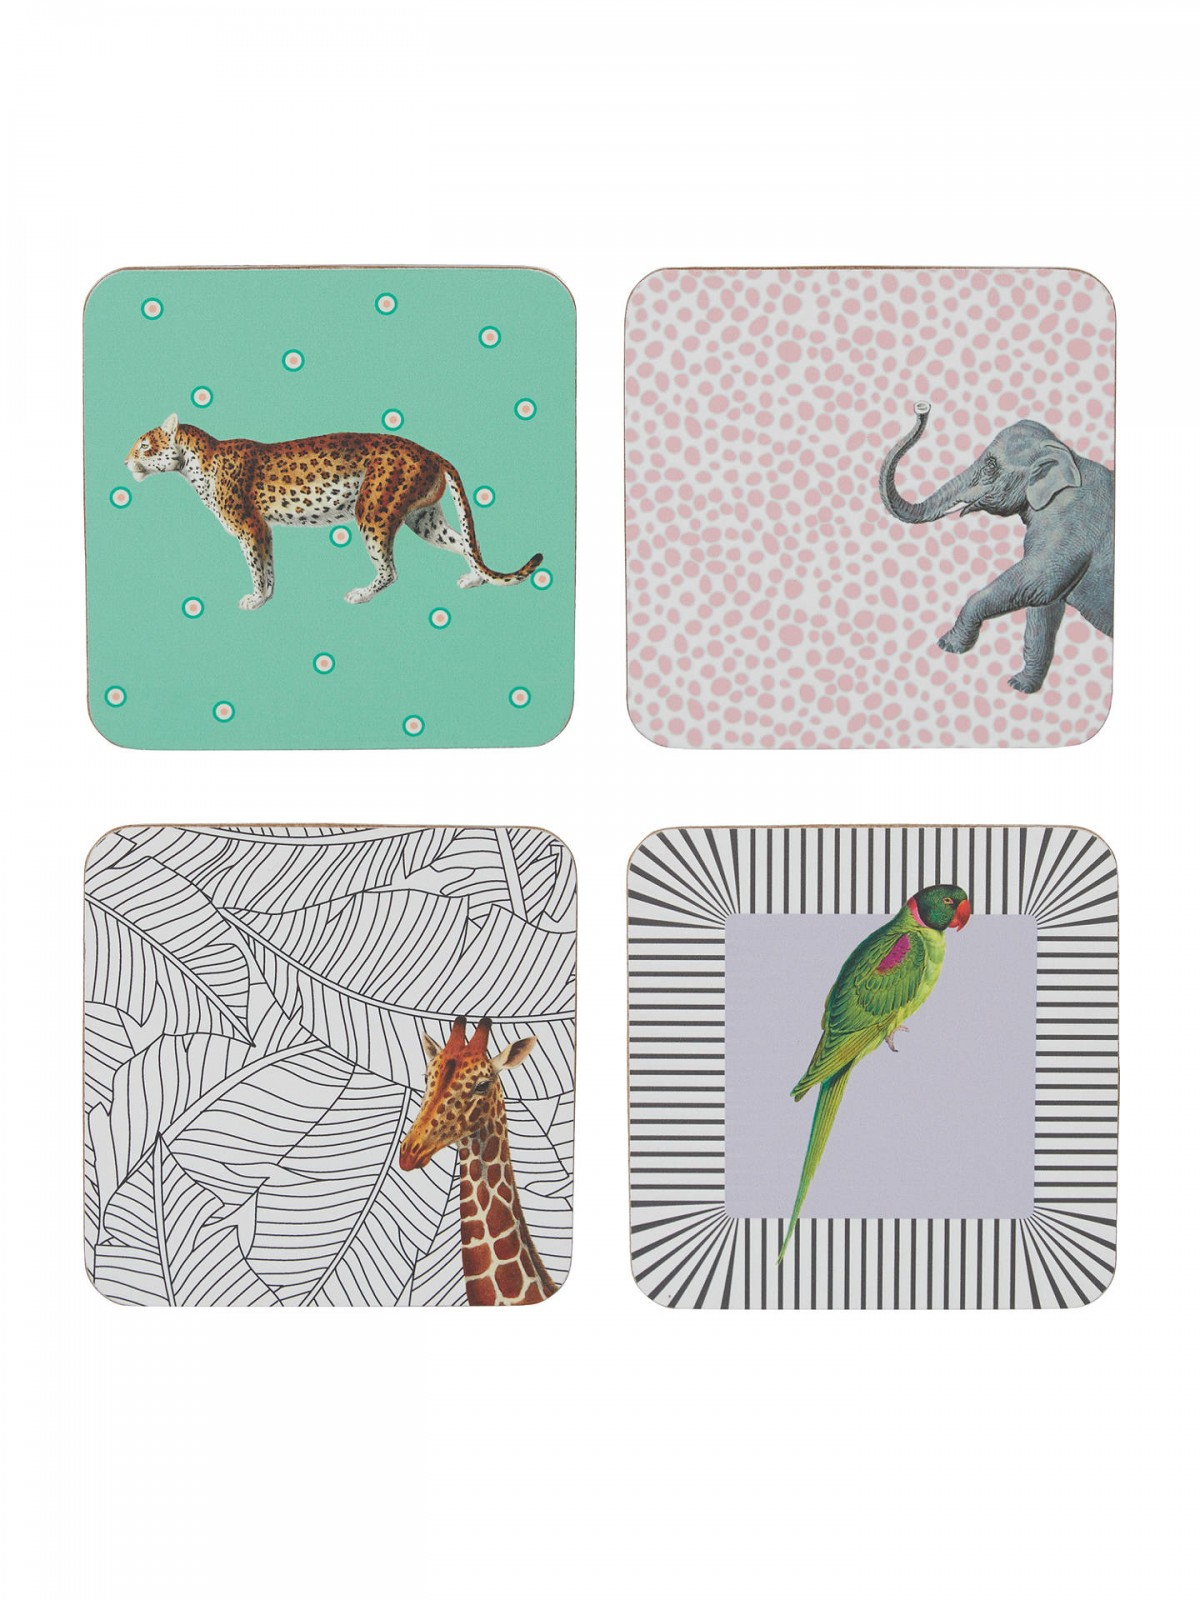 Animal Coasters, set of 4